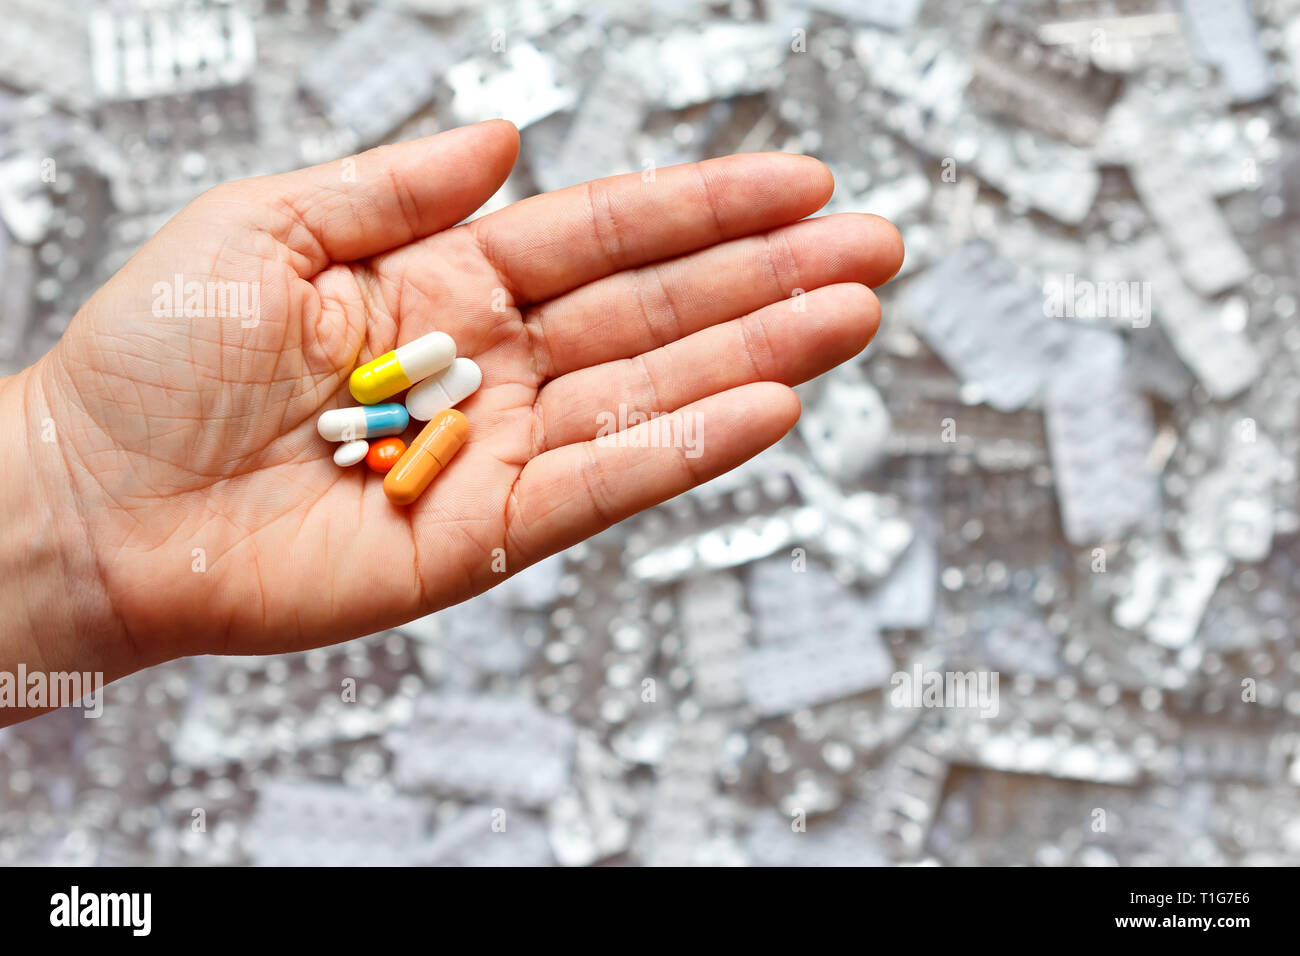 Hand with many different tablets in front of empty blister packages, multi-medication concept Stock Photo